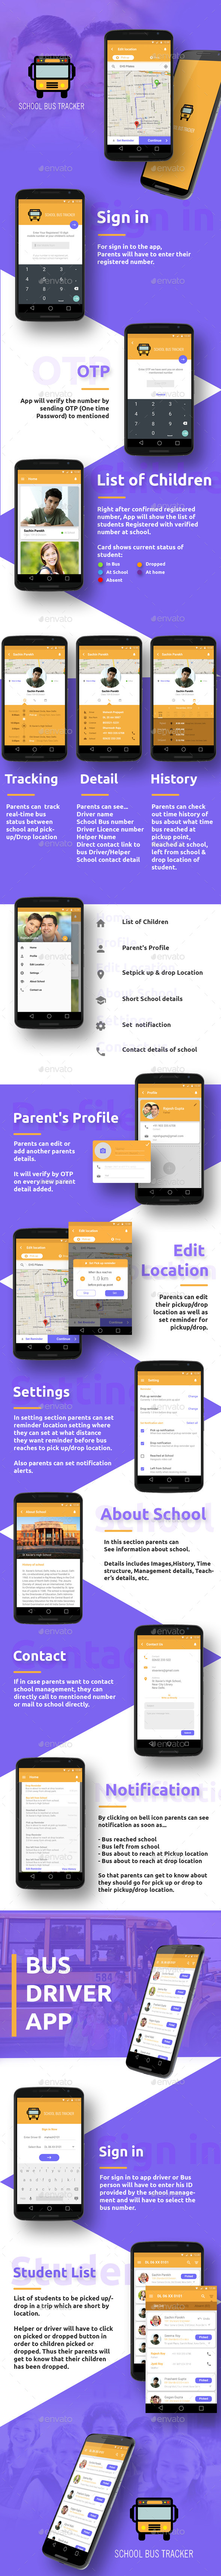 Bus Tracking Mobile App UI - User Interfaces Web Elements